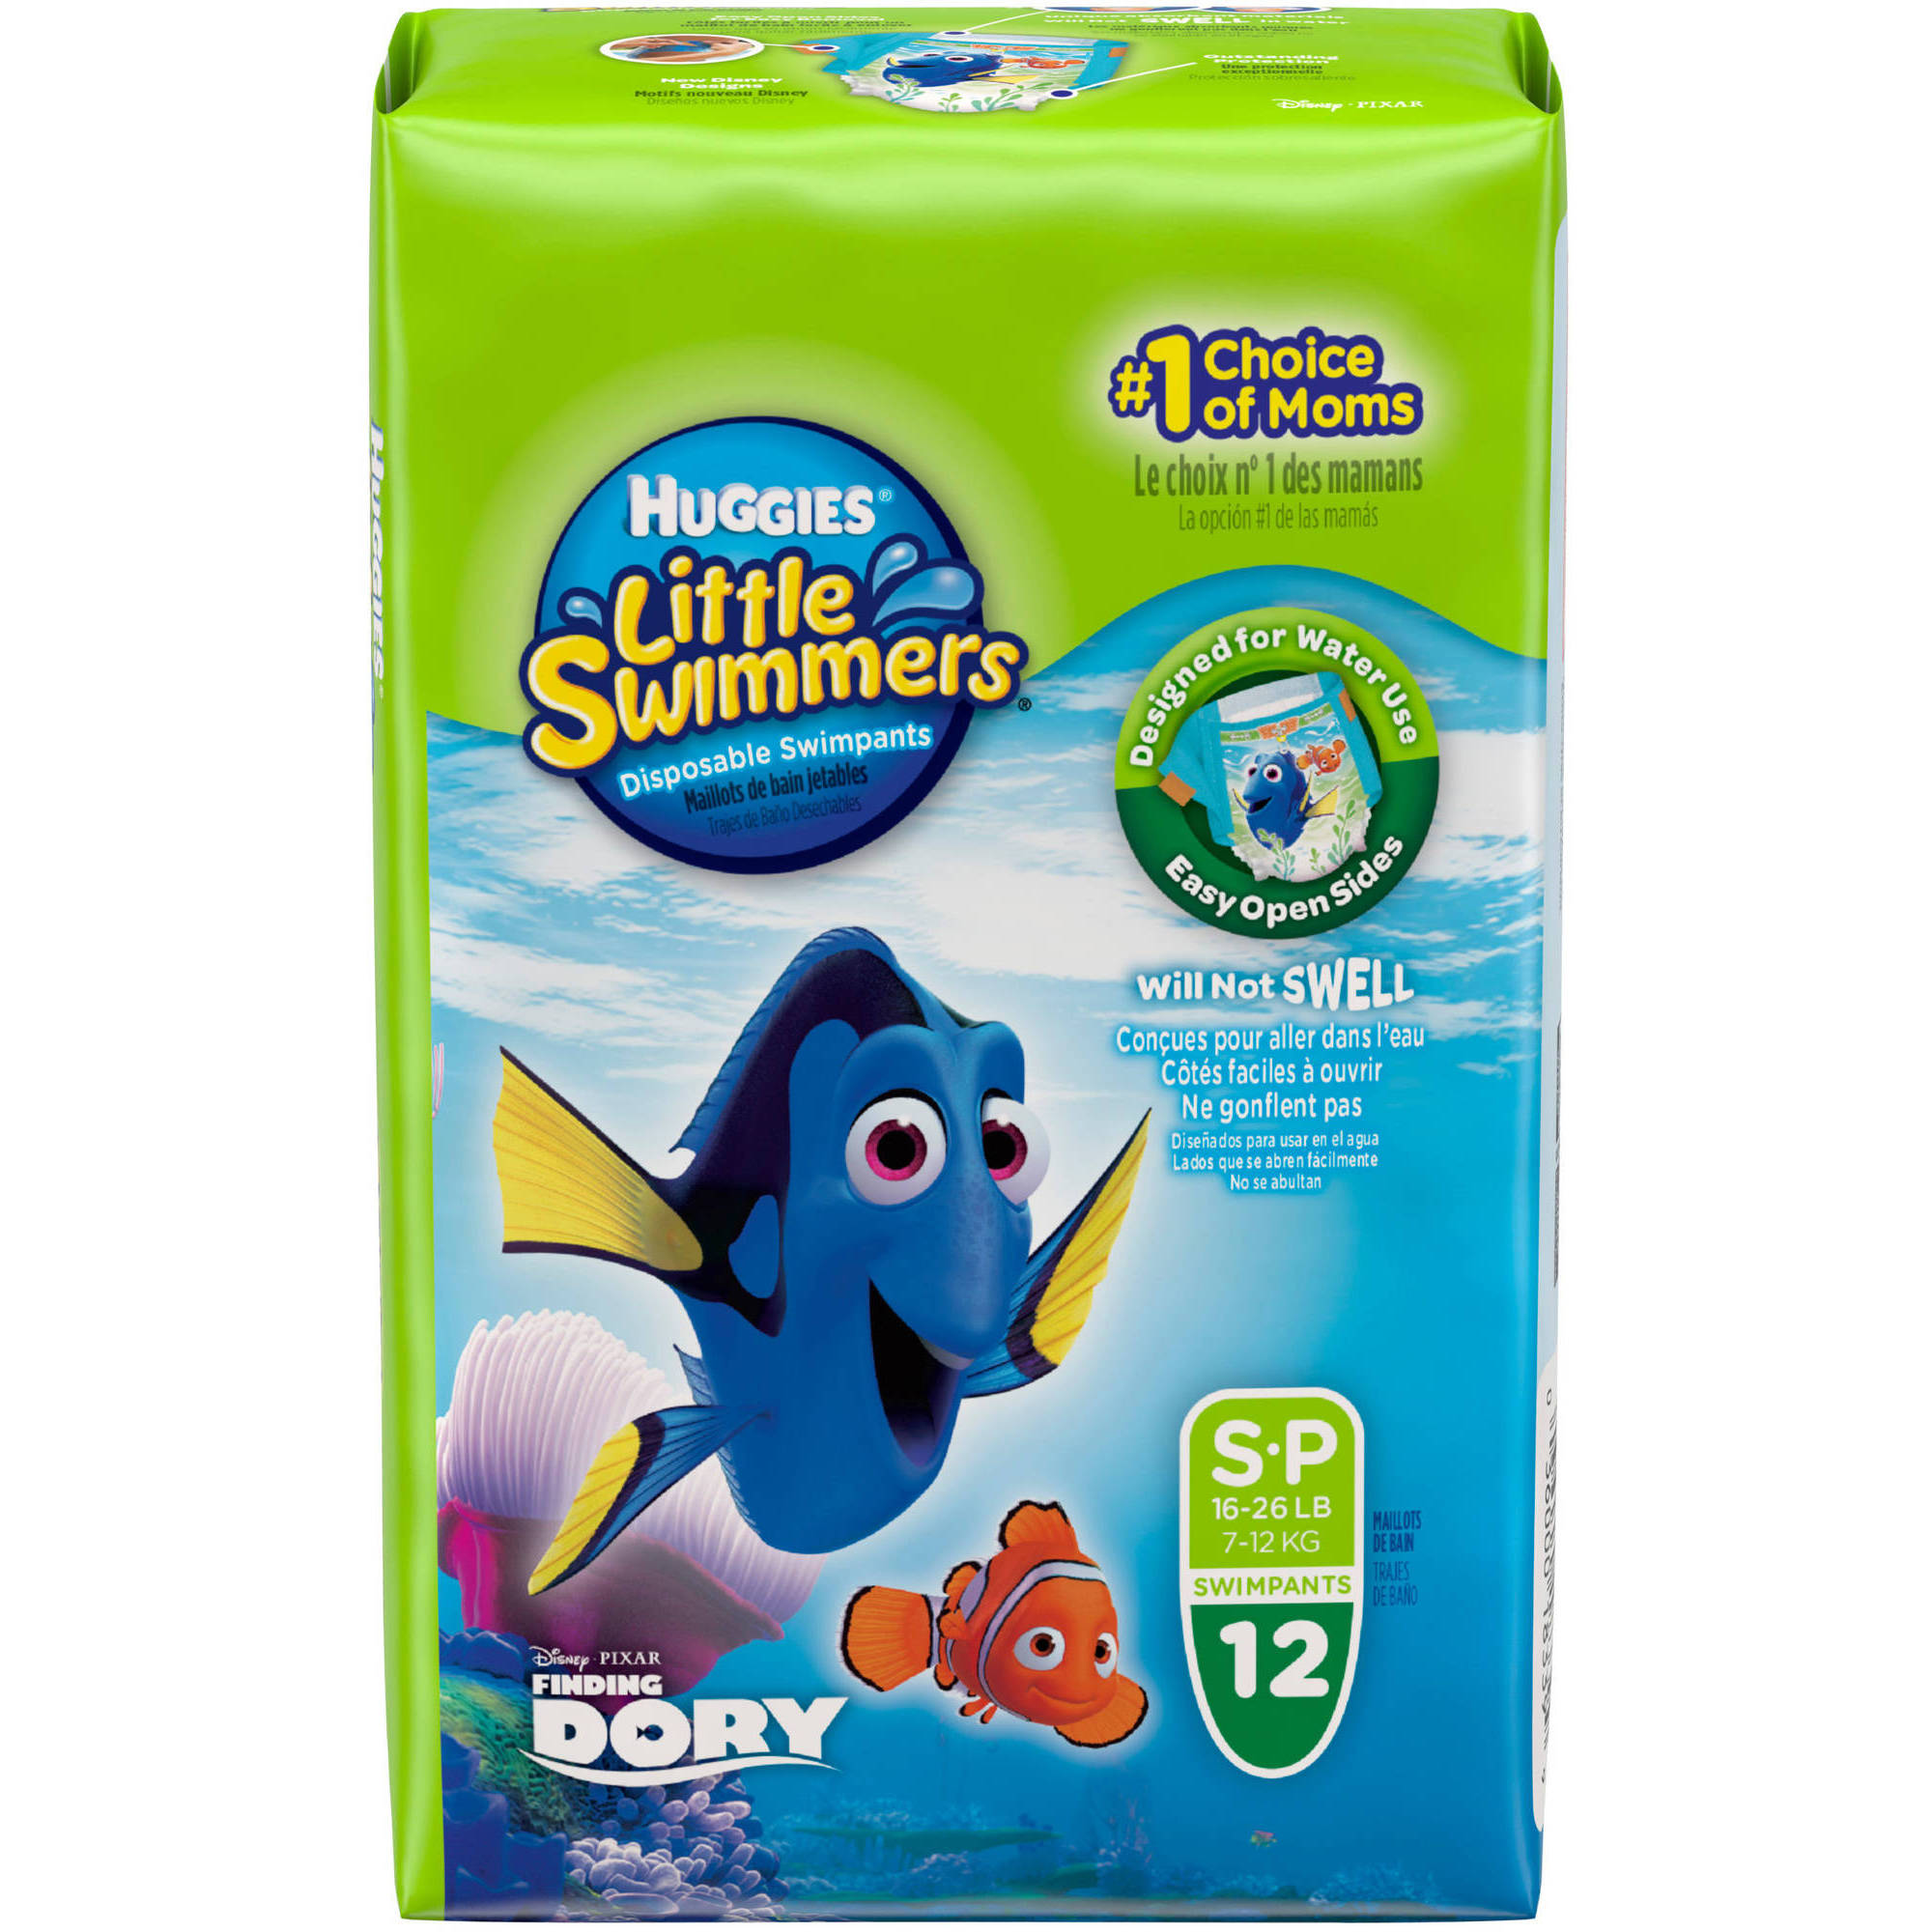 HUGGIES Little Swimmers Disposable Diaper Swimpants, (Choose Your Size)